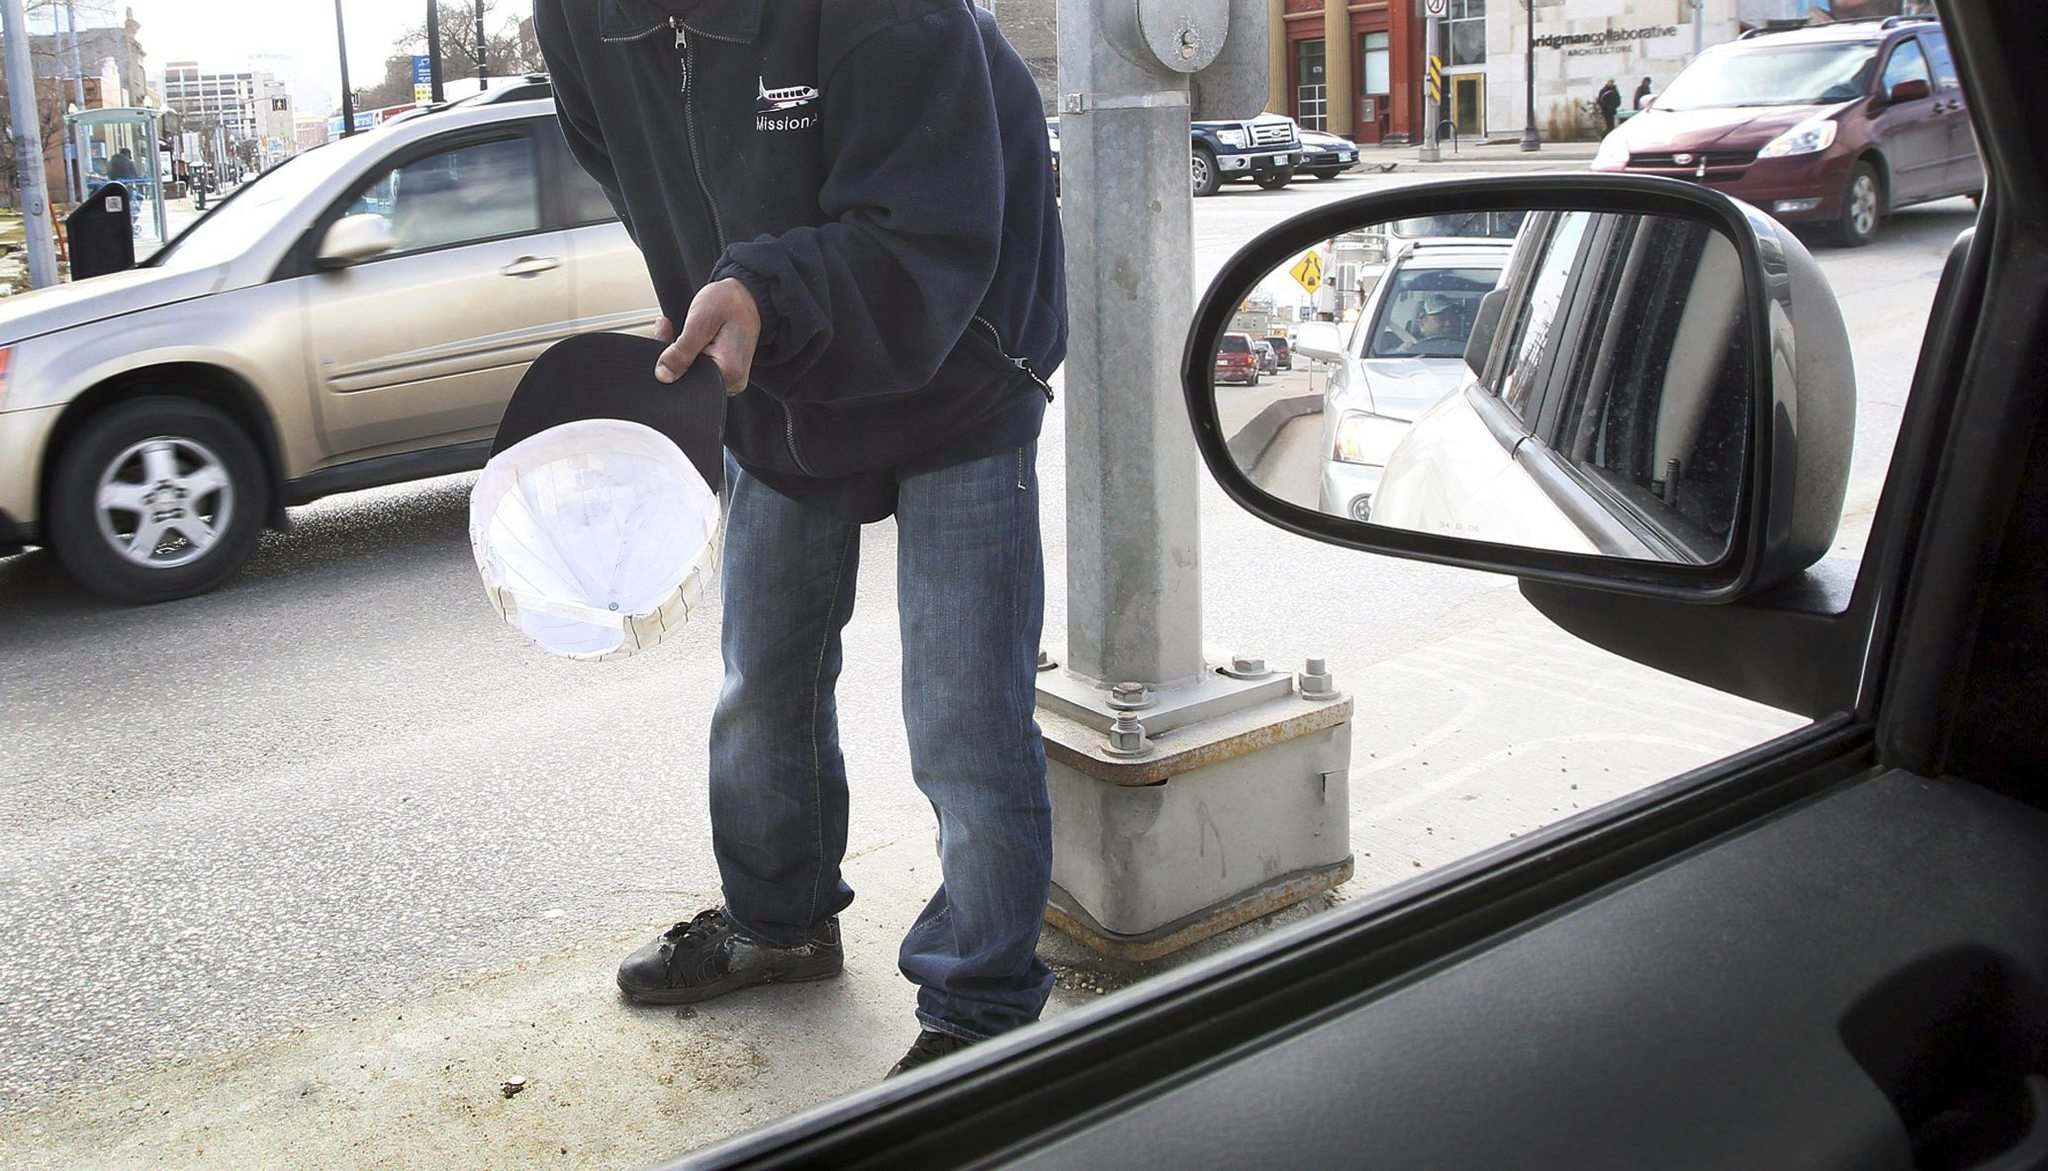 <p>Siloam Mission executive chief Jim Bell says panhandling on the street is unsafe, 'One little slip and one little fall and it could be tragic.'</p>